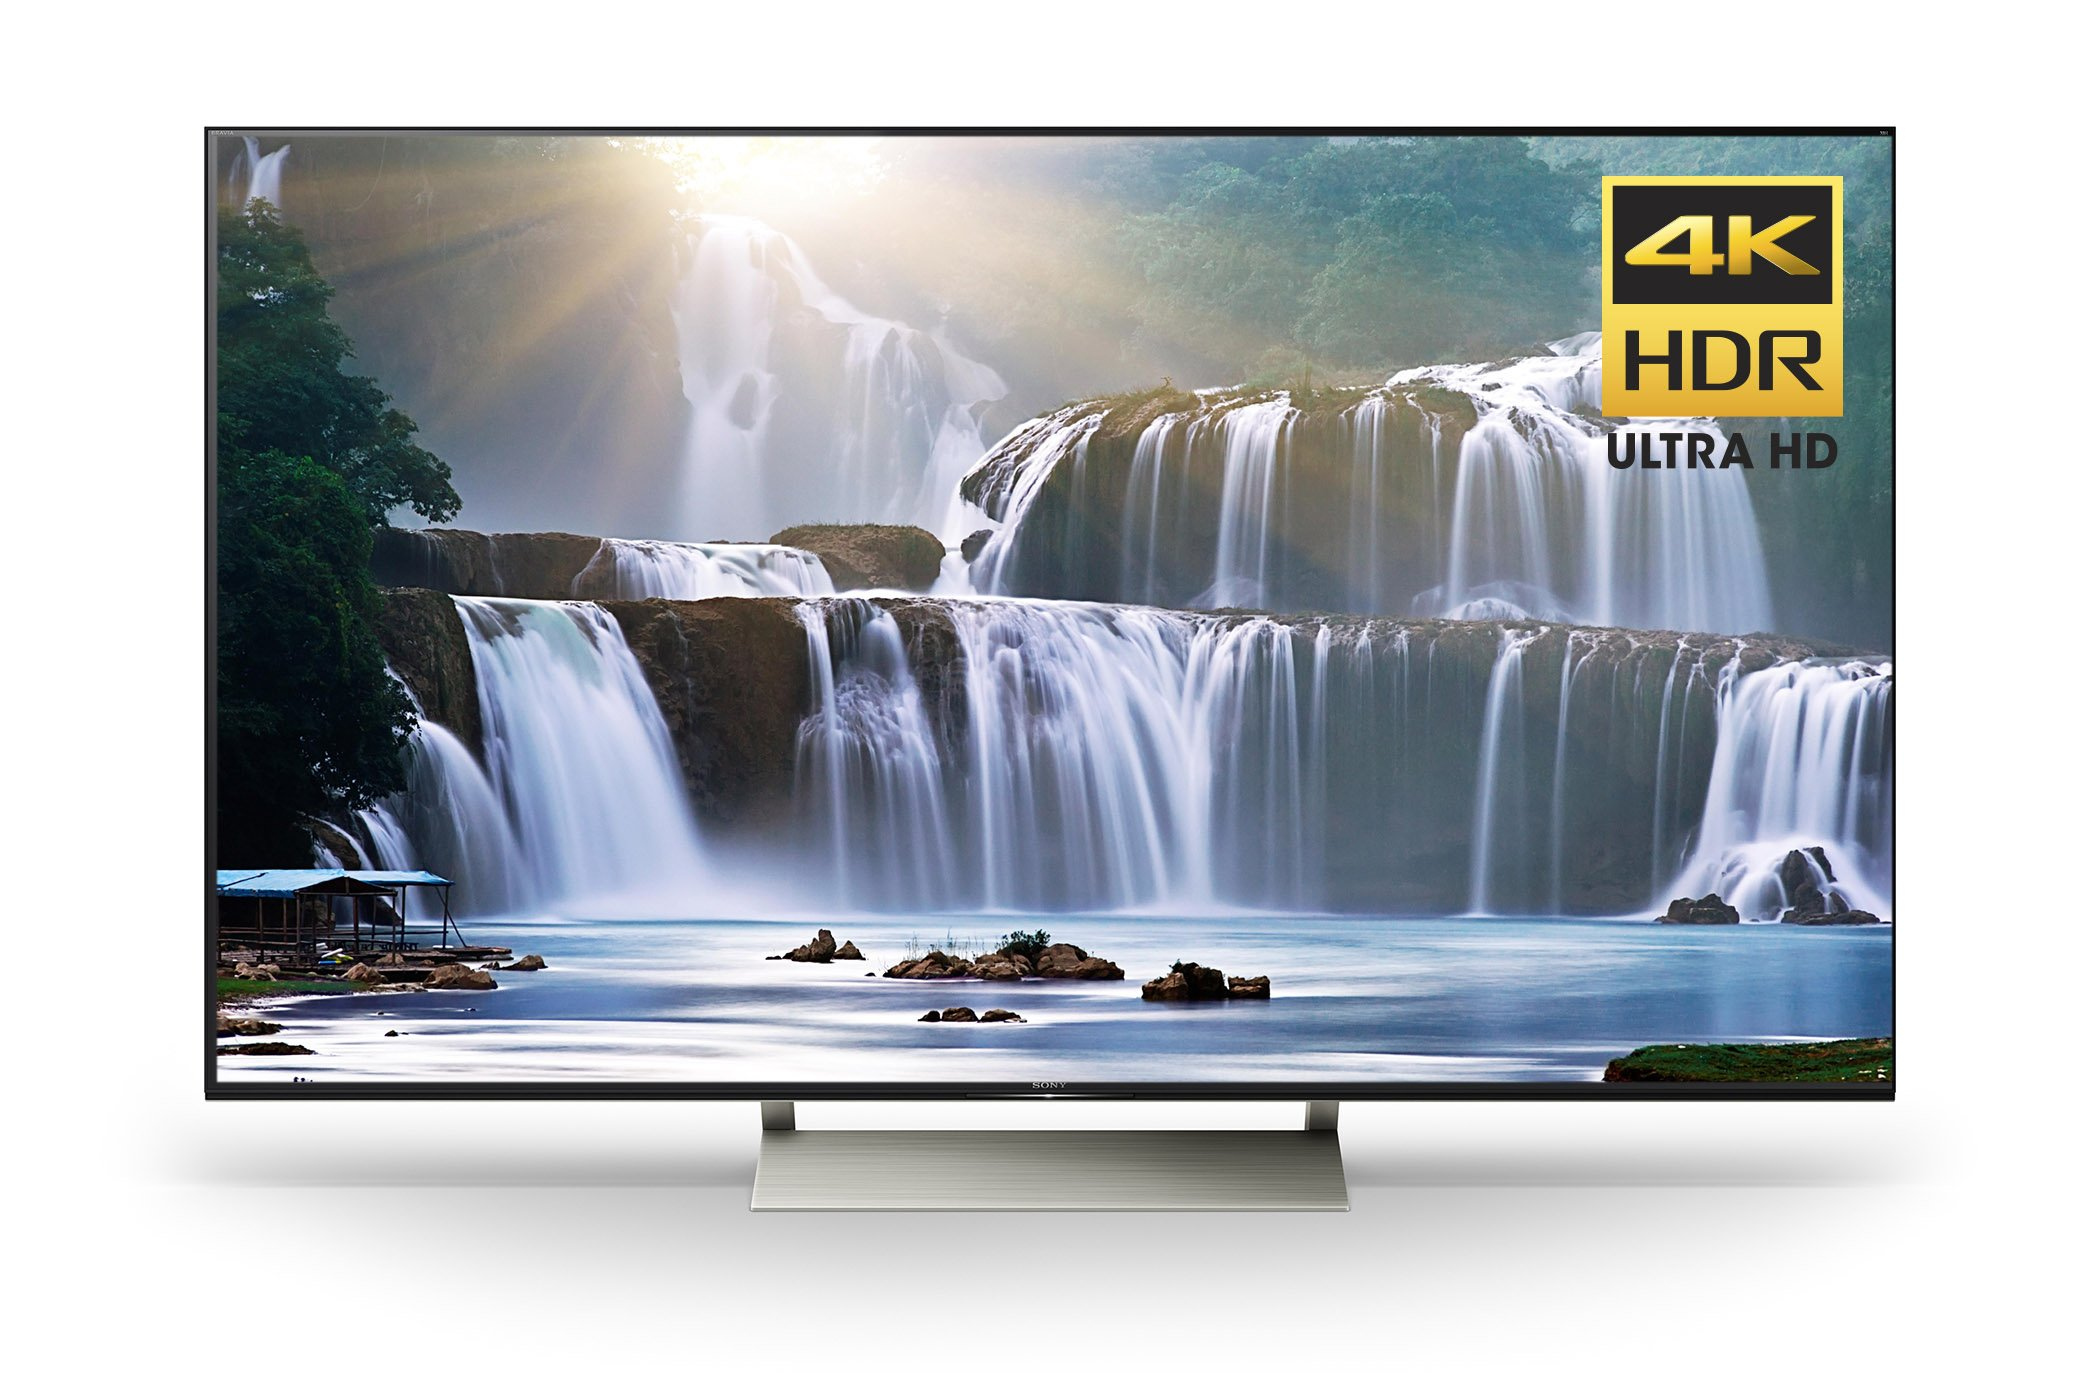 Sony XBR55X930E 55-Inch 4K HDR Ultra HD TV (2017 Model) 1